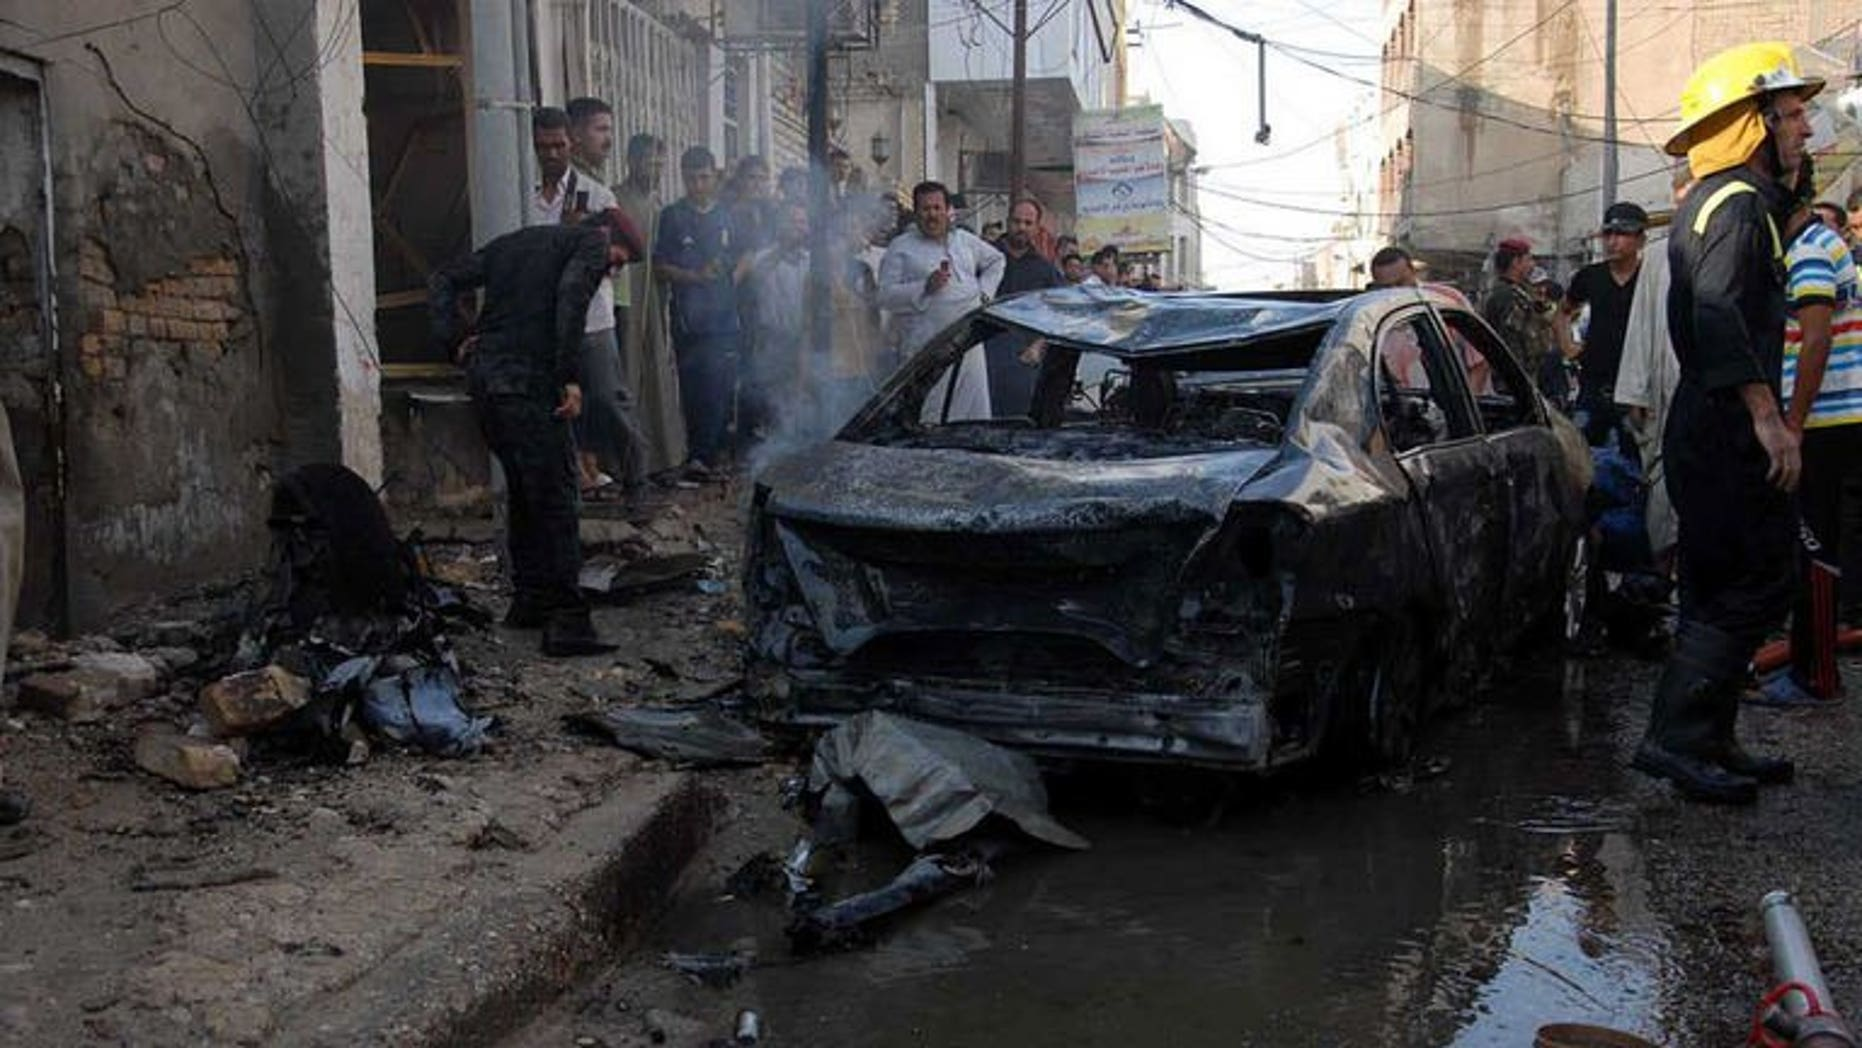 Iraqis gather near the remains of a vehicle at the scene of a car bomb in Nasiriyah, south of Baghdad on August 19, 2013. Attacks in Iraq killed seven people, damaged an oil pipeline and hit a Shiite shrine on Wednesday, as the country grapples with a months-long spike in violence.